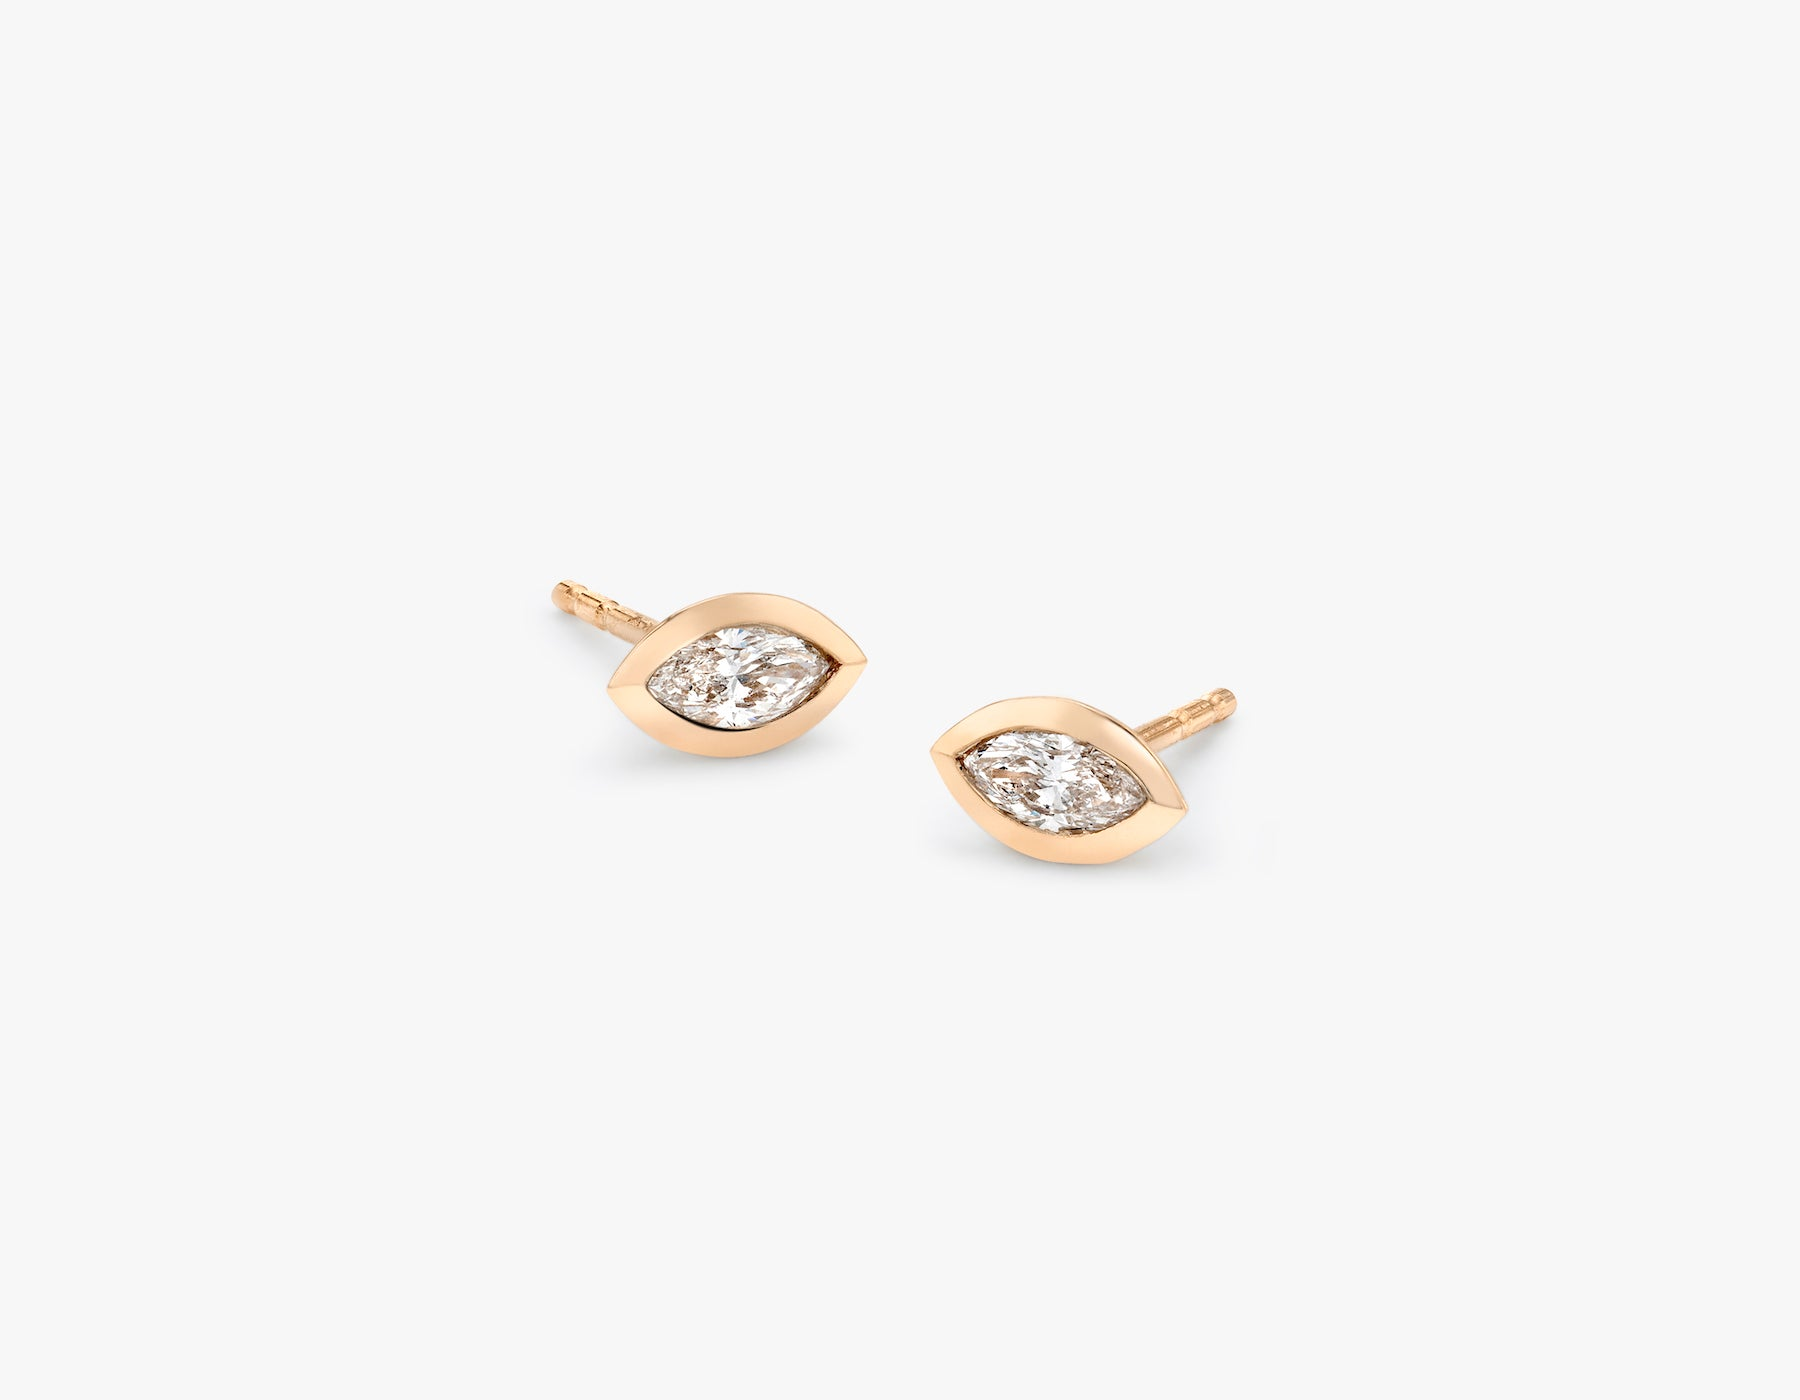 Vrai simple minimalist Marquise Diamond Bezel Earrings, 14K Rose Gold